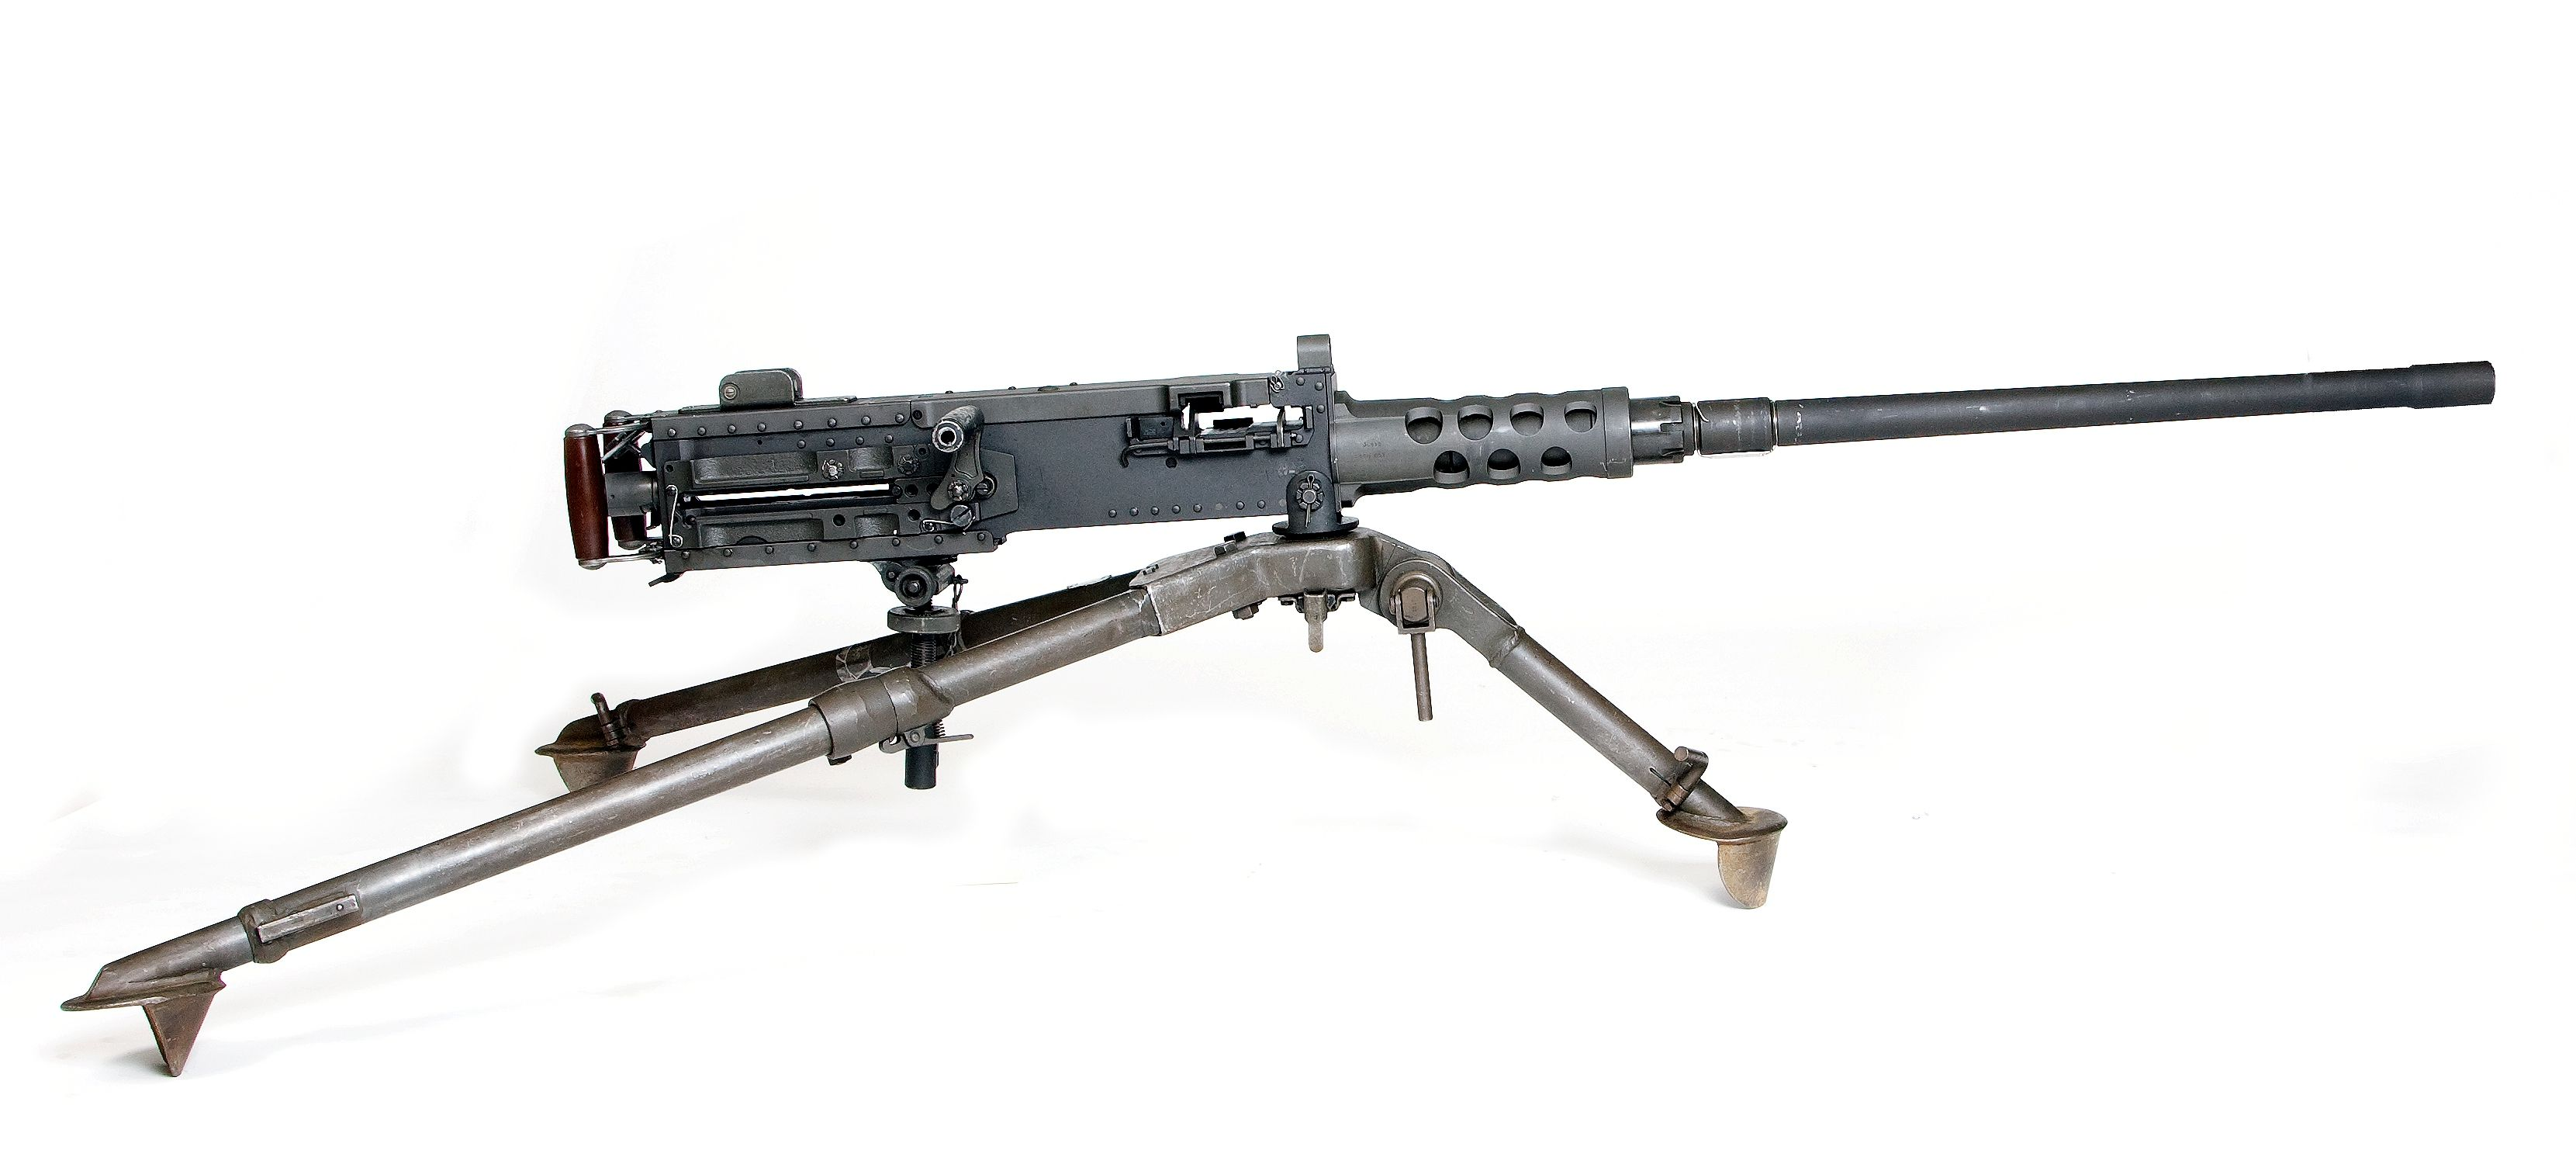 Browning 50 Cal Machine Gun With Armor Piercing Rounds Like The